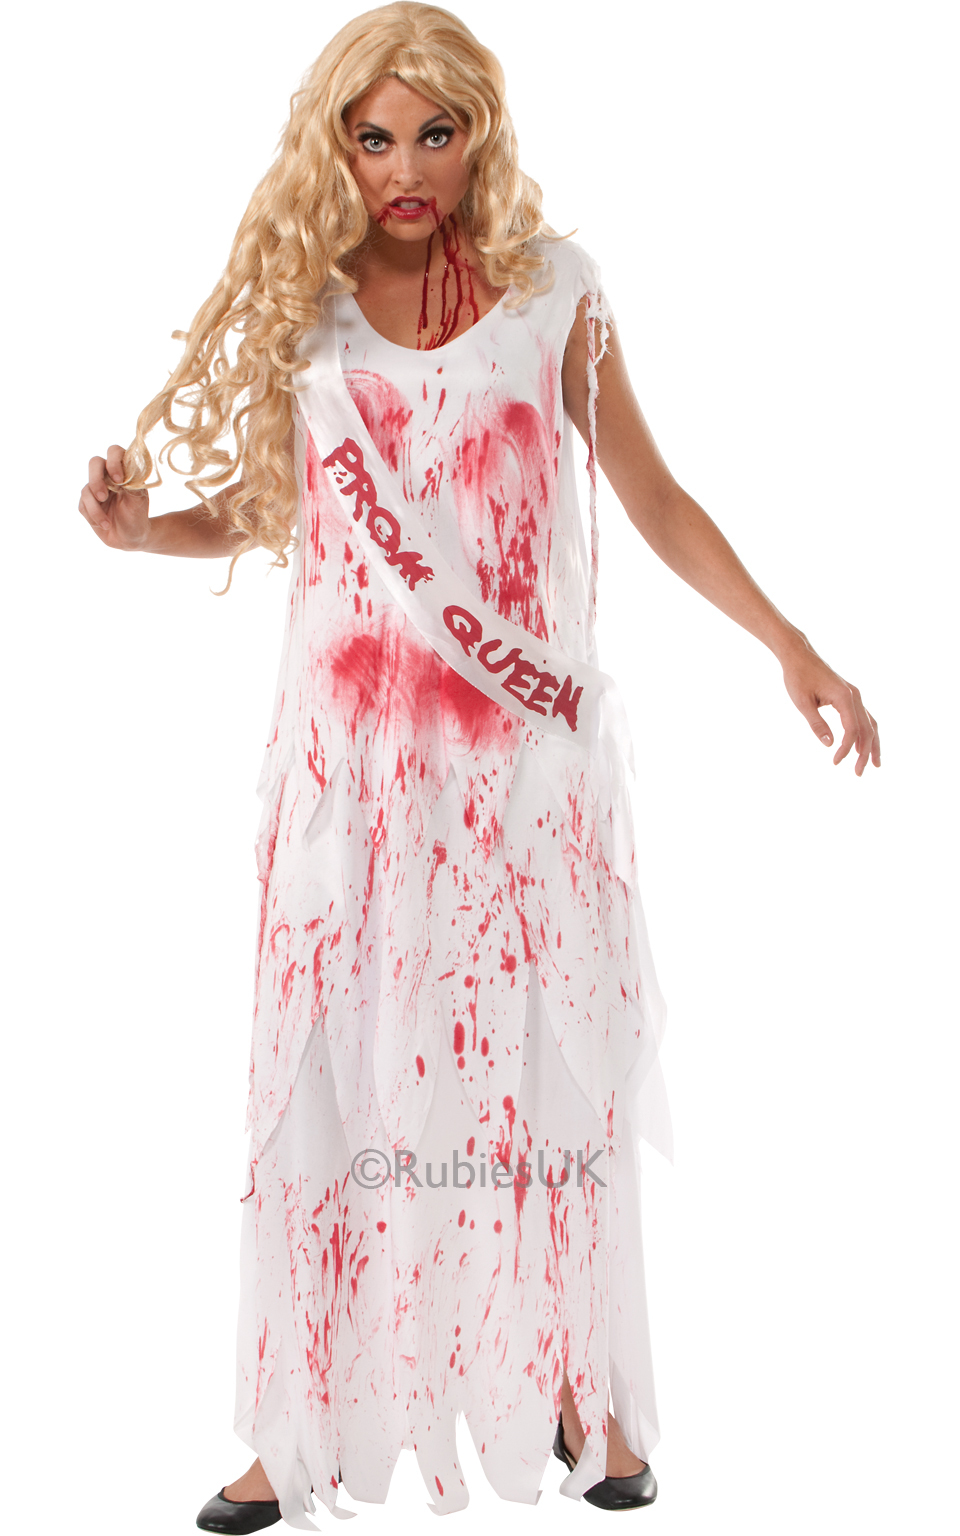 Bloody Prom Queen costume 810007